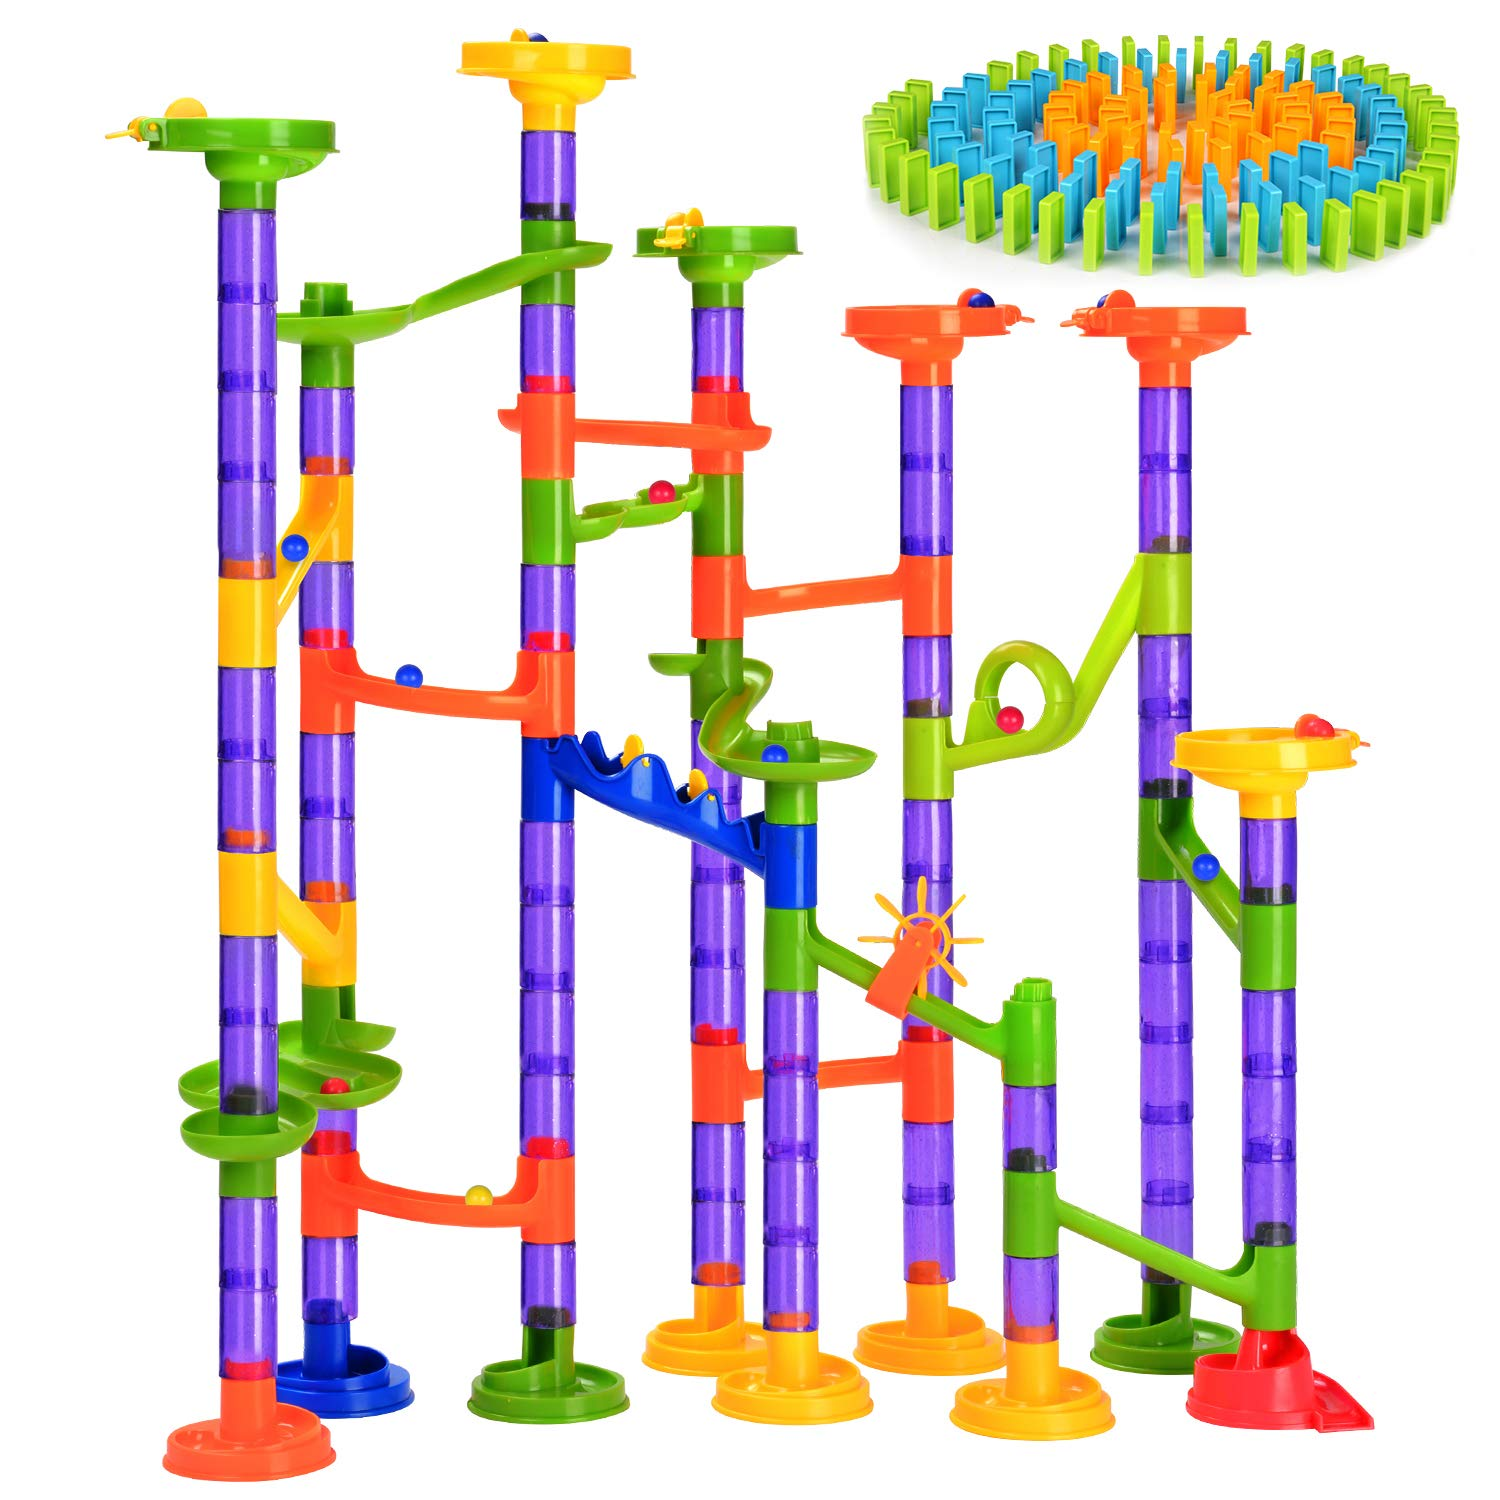 Marble Run [242 Pieces] Building Blocks with Dominoes Marble Game for Kids As Gifts Marble Race Coaster Set STEM Learning Toys